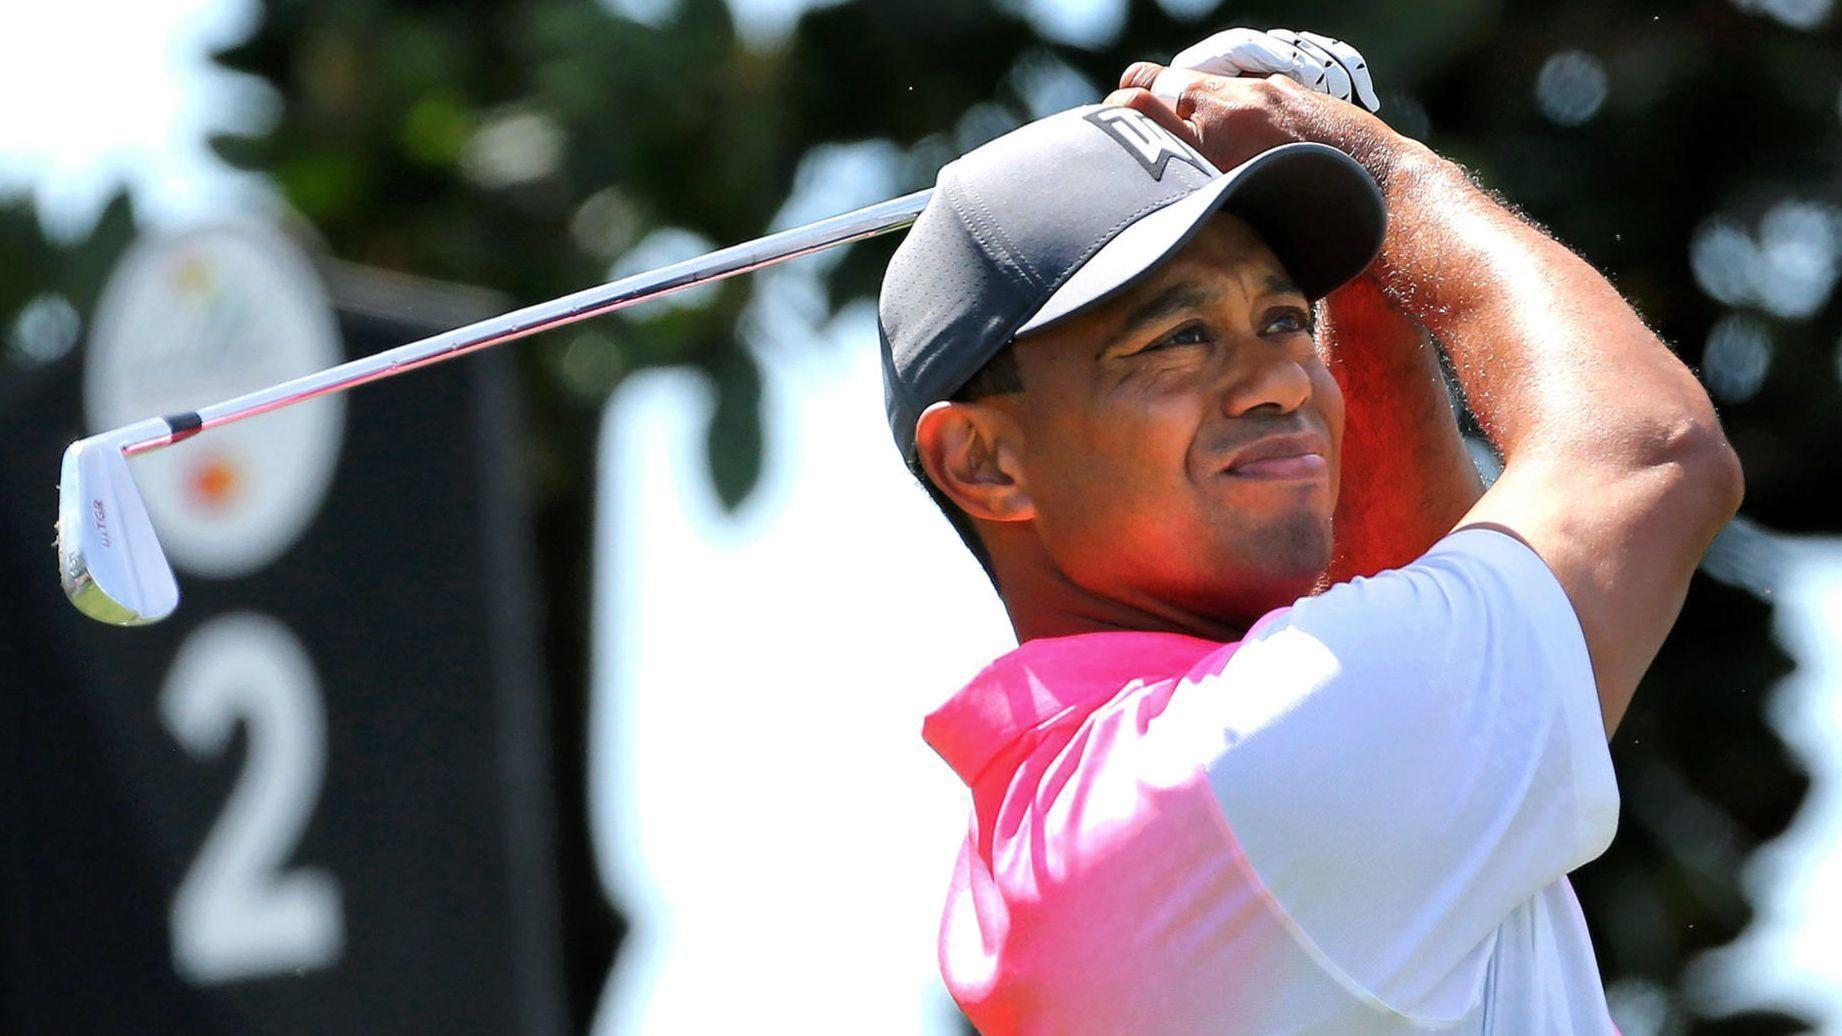 Live Updates: Tiger Woods plays his second round at the Arnold Palmer Invitational